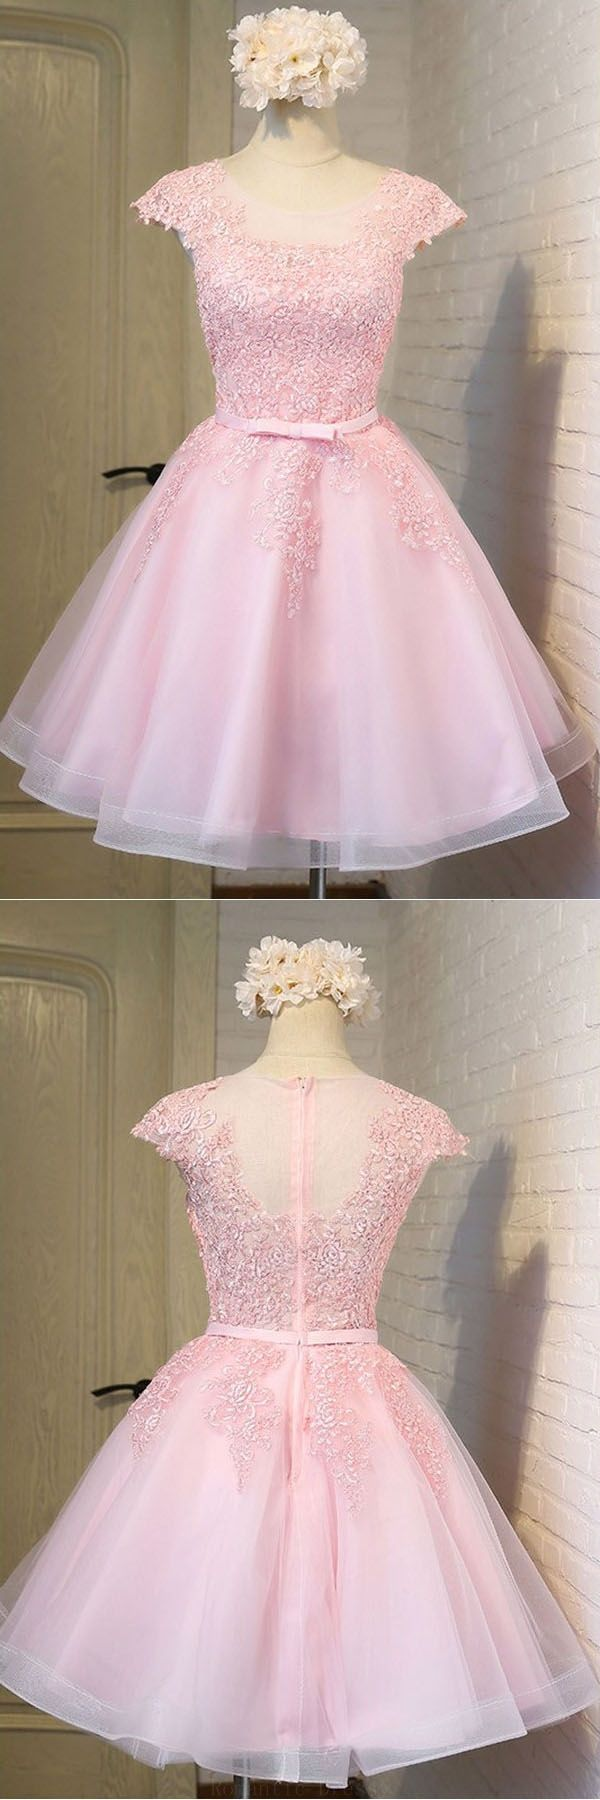 Outlet Feminine Prom Dresses Pink Pink Lace Short Tulle Homecoming ...